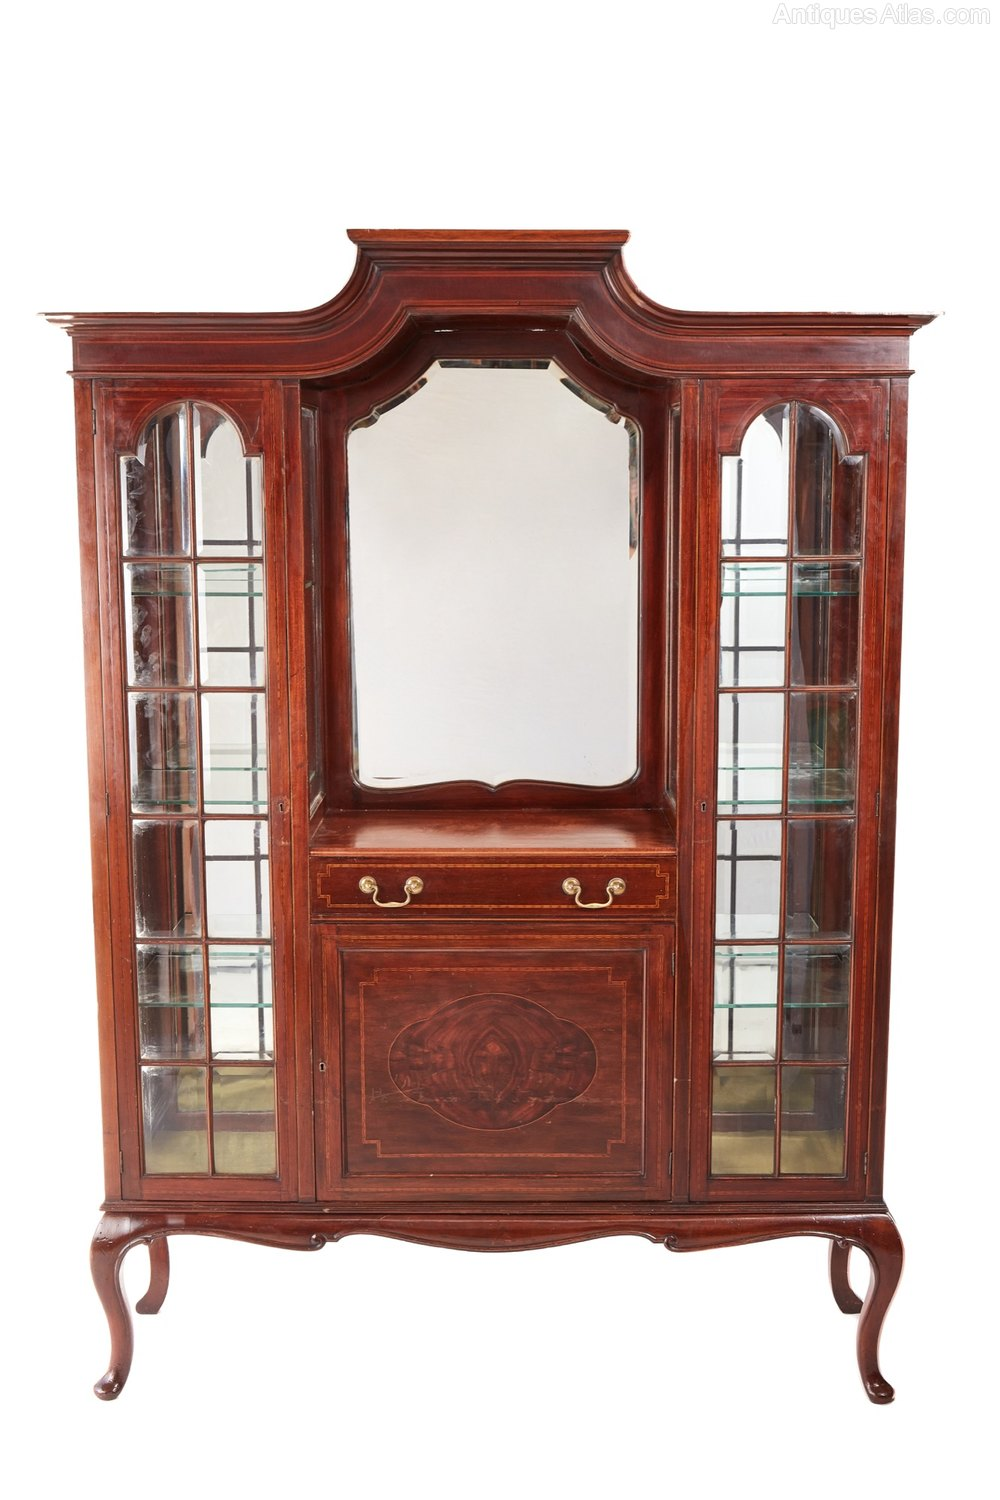 Edwardian Inlaid Mahogany Display Cabinet By Maple Antiques Atlas